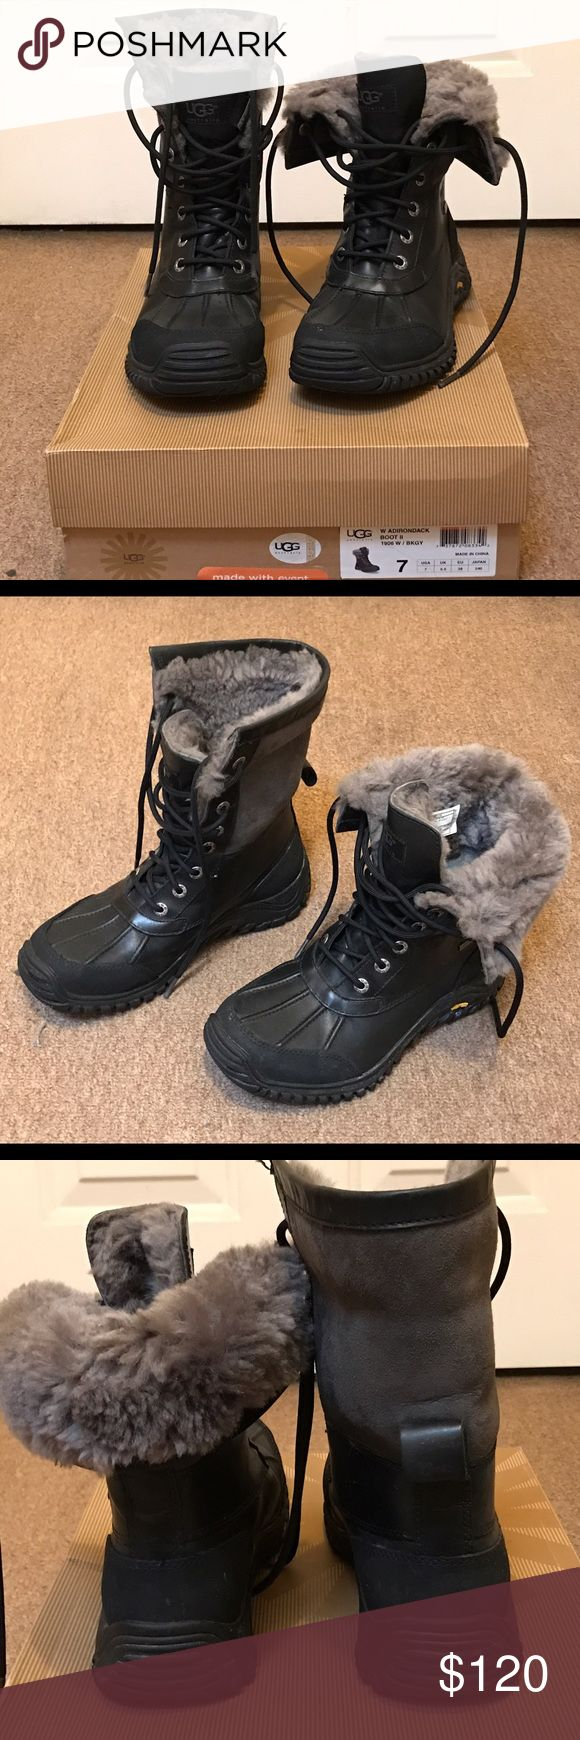 UGG- Adirondack Boot II- Black w/Gray- Sz 7 WMS Boots in GREAT condition! Not a fan of this style so not worn often. Traction on bottom in great condition as well. UGG Shoes Winter & Rain Boots